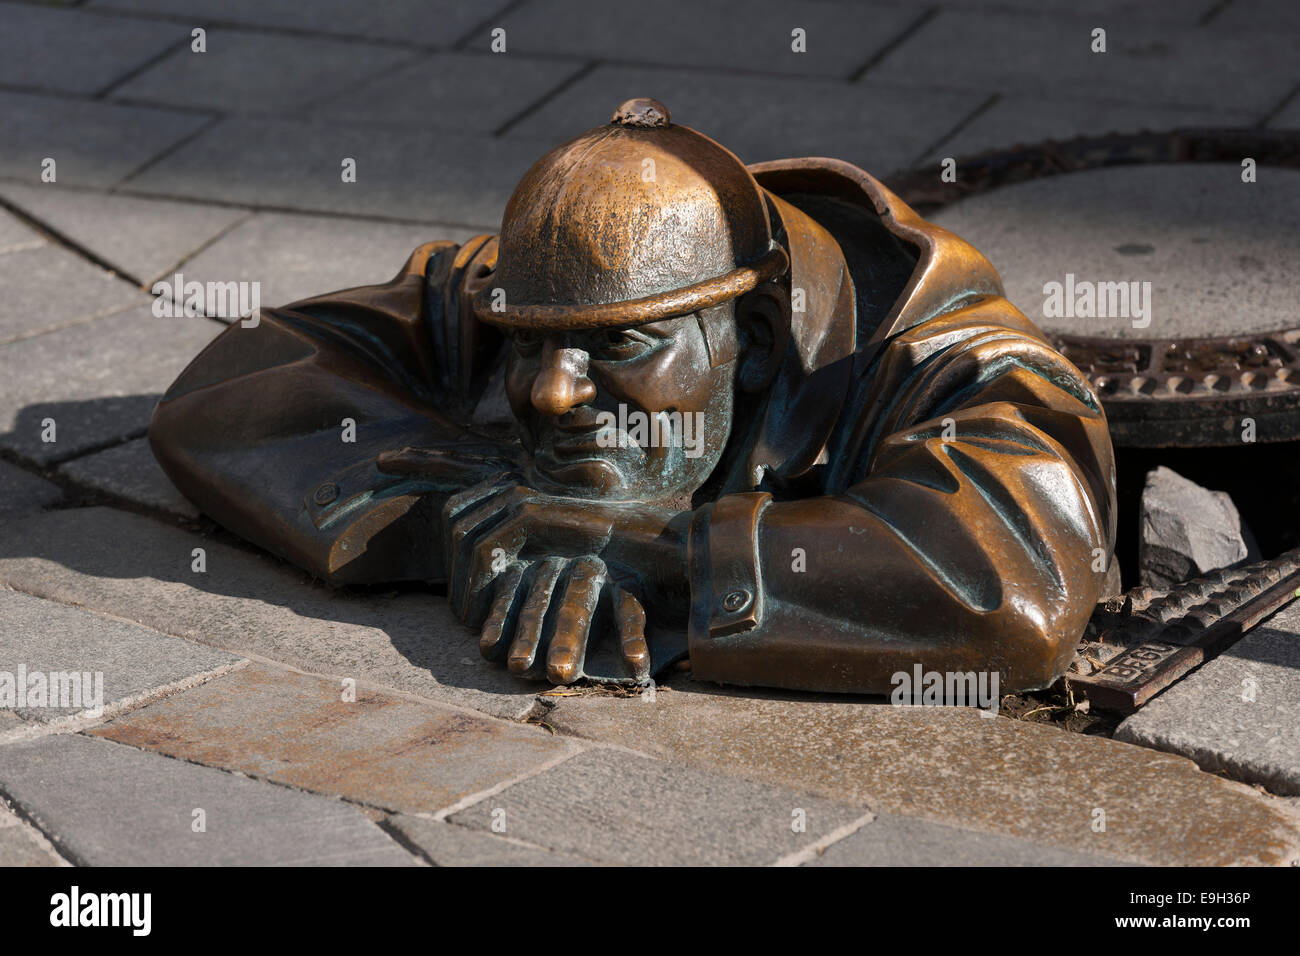 Quot man at work sculpture in a manhole cover by viktor